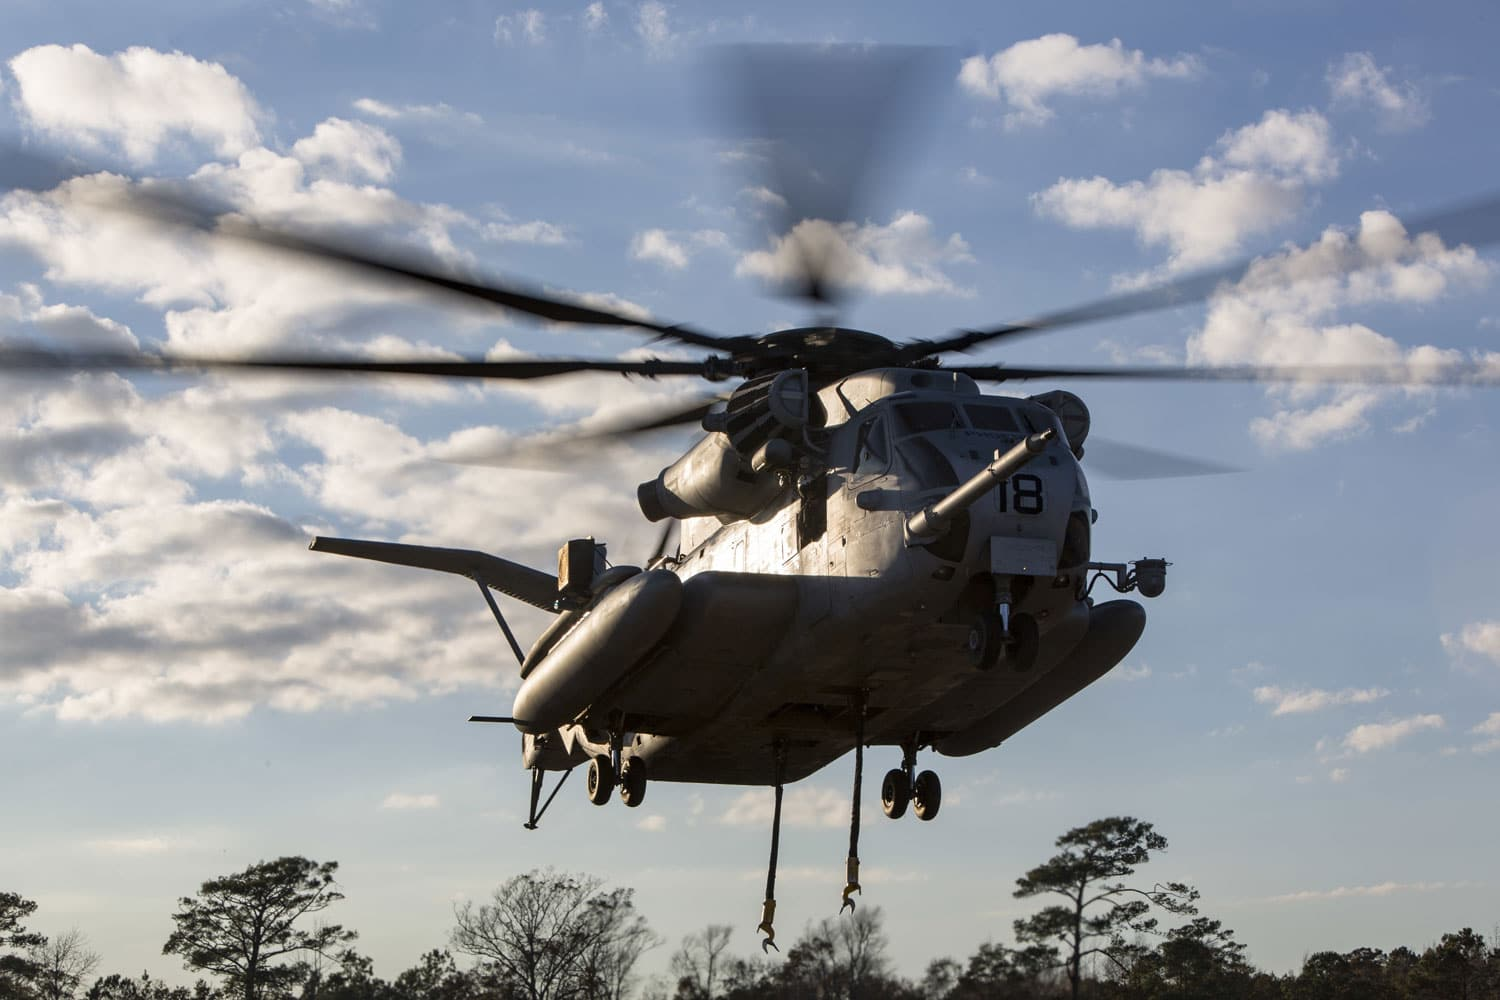 CH-53E Super Stallion Helicopter with Marine Heavy Helicopter Training Squadron